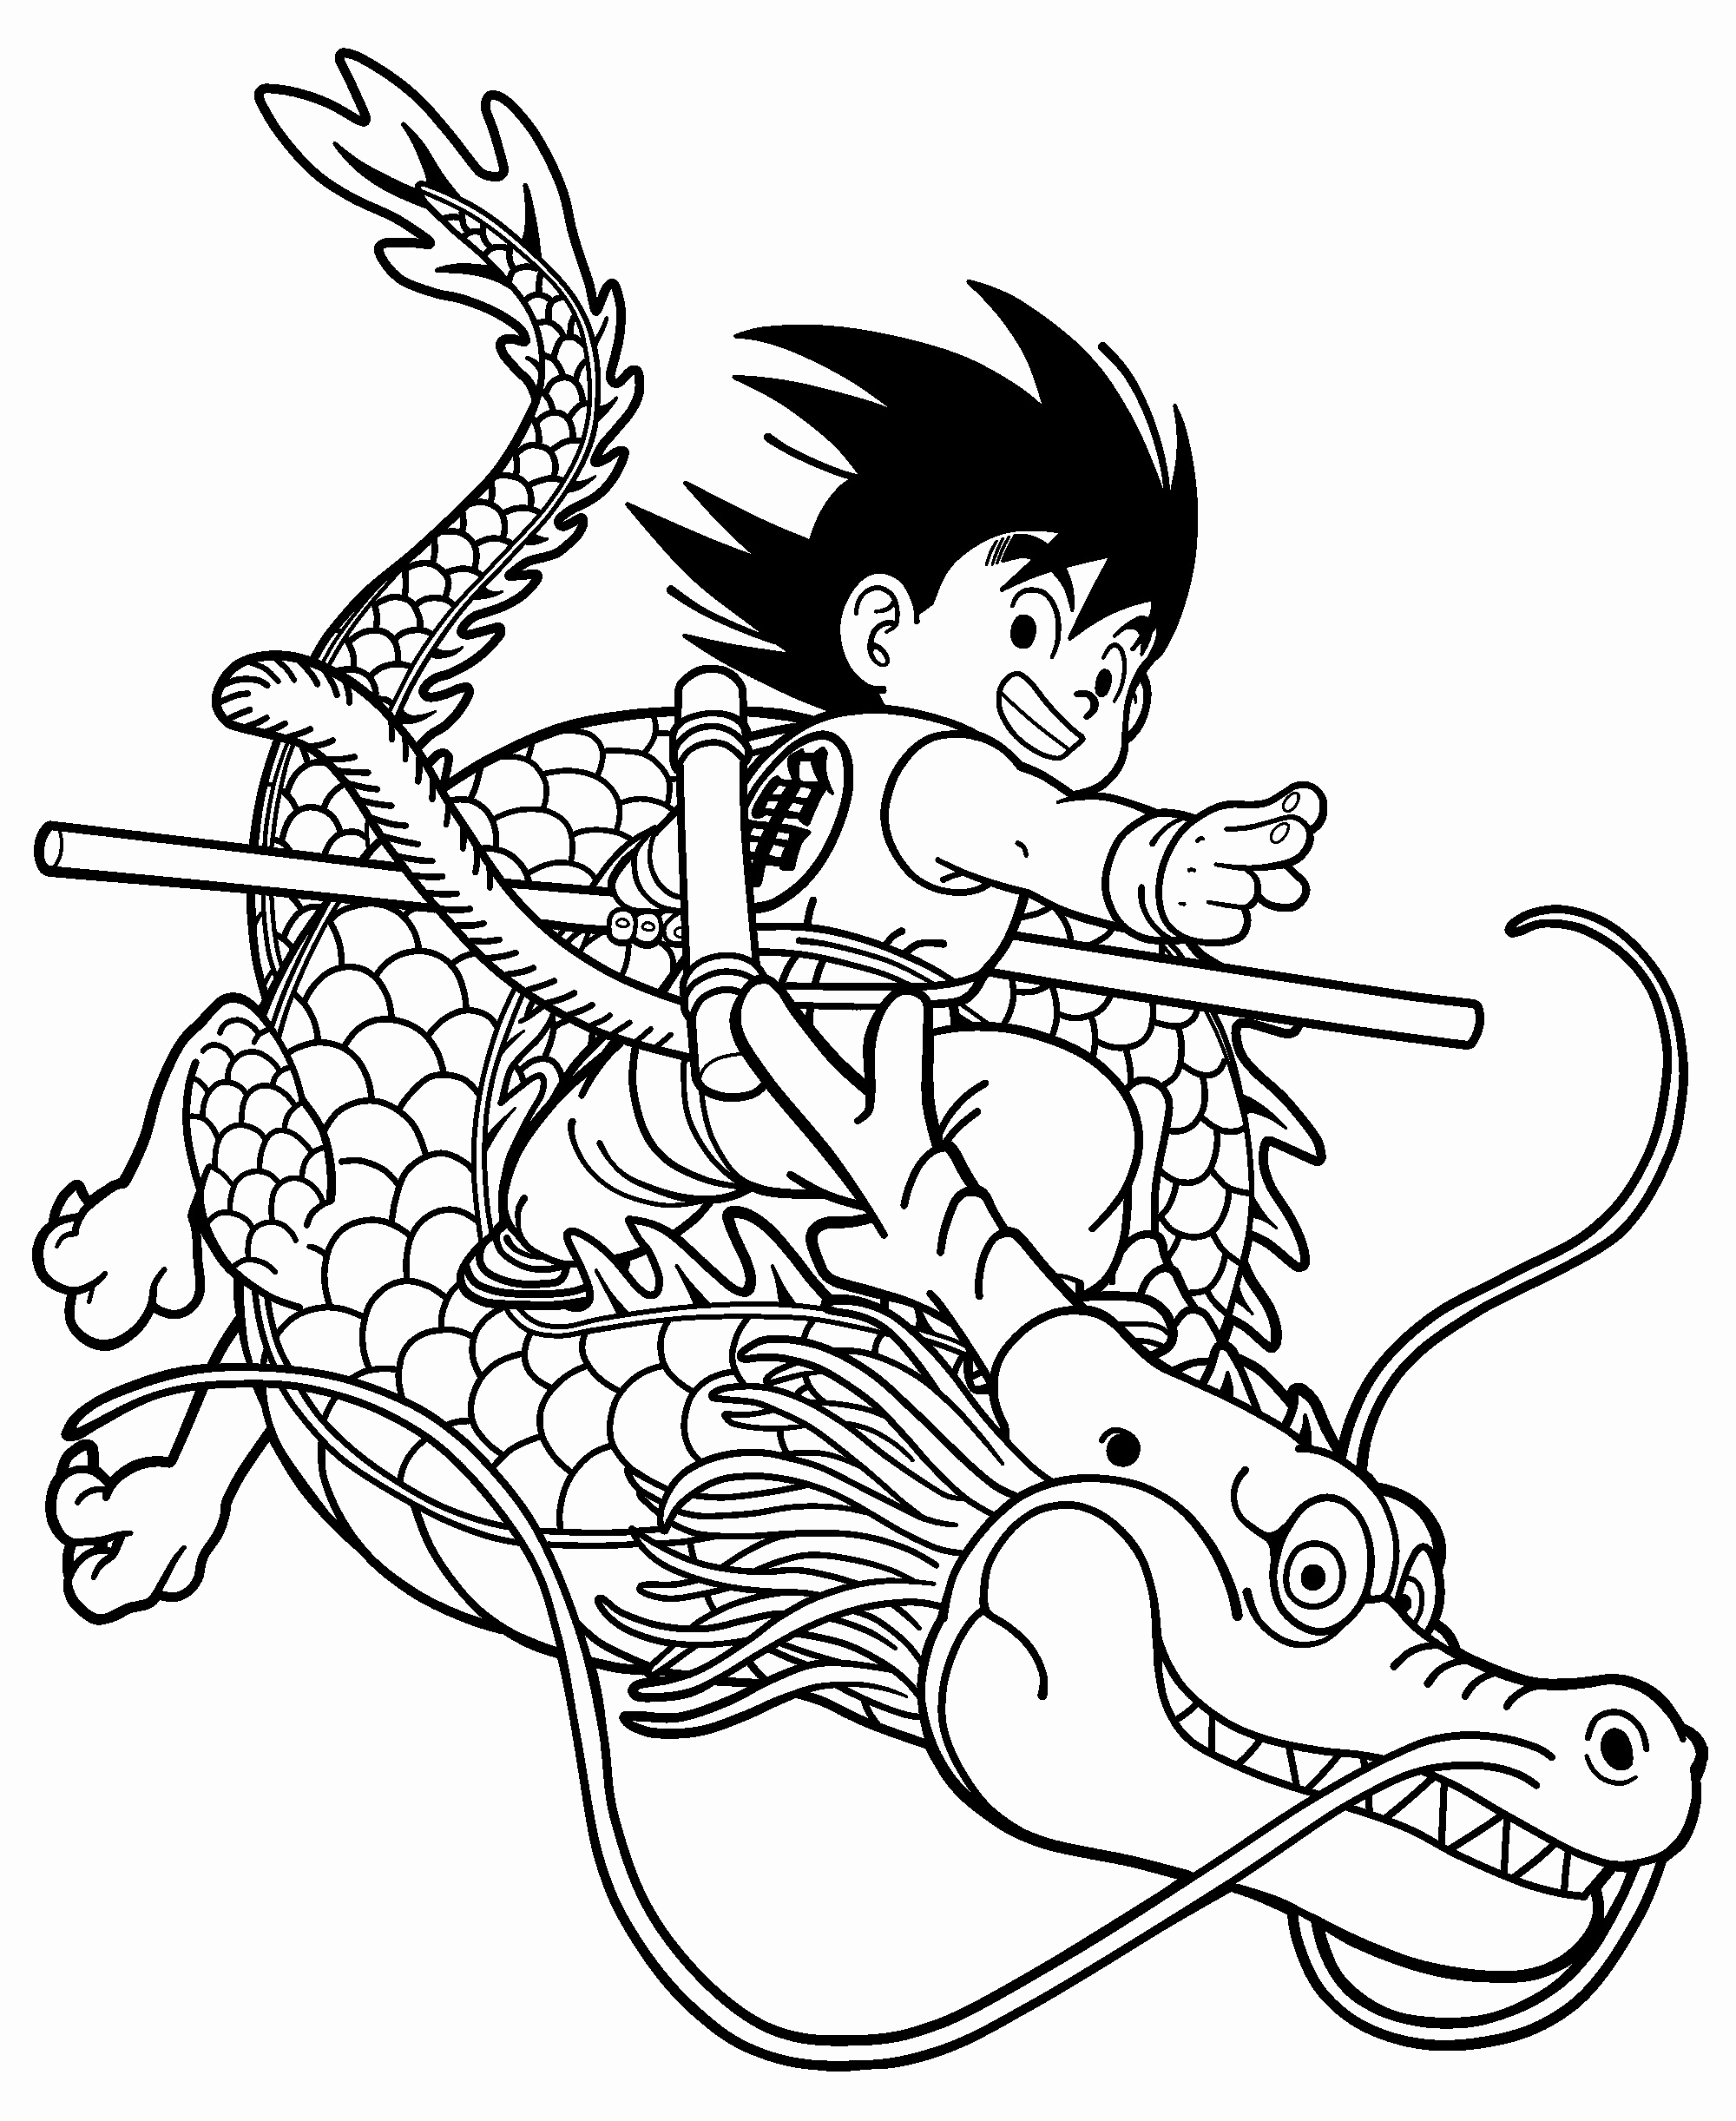 Coloriage Dragon Japonais tout Coloriage Difficile Dragon